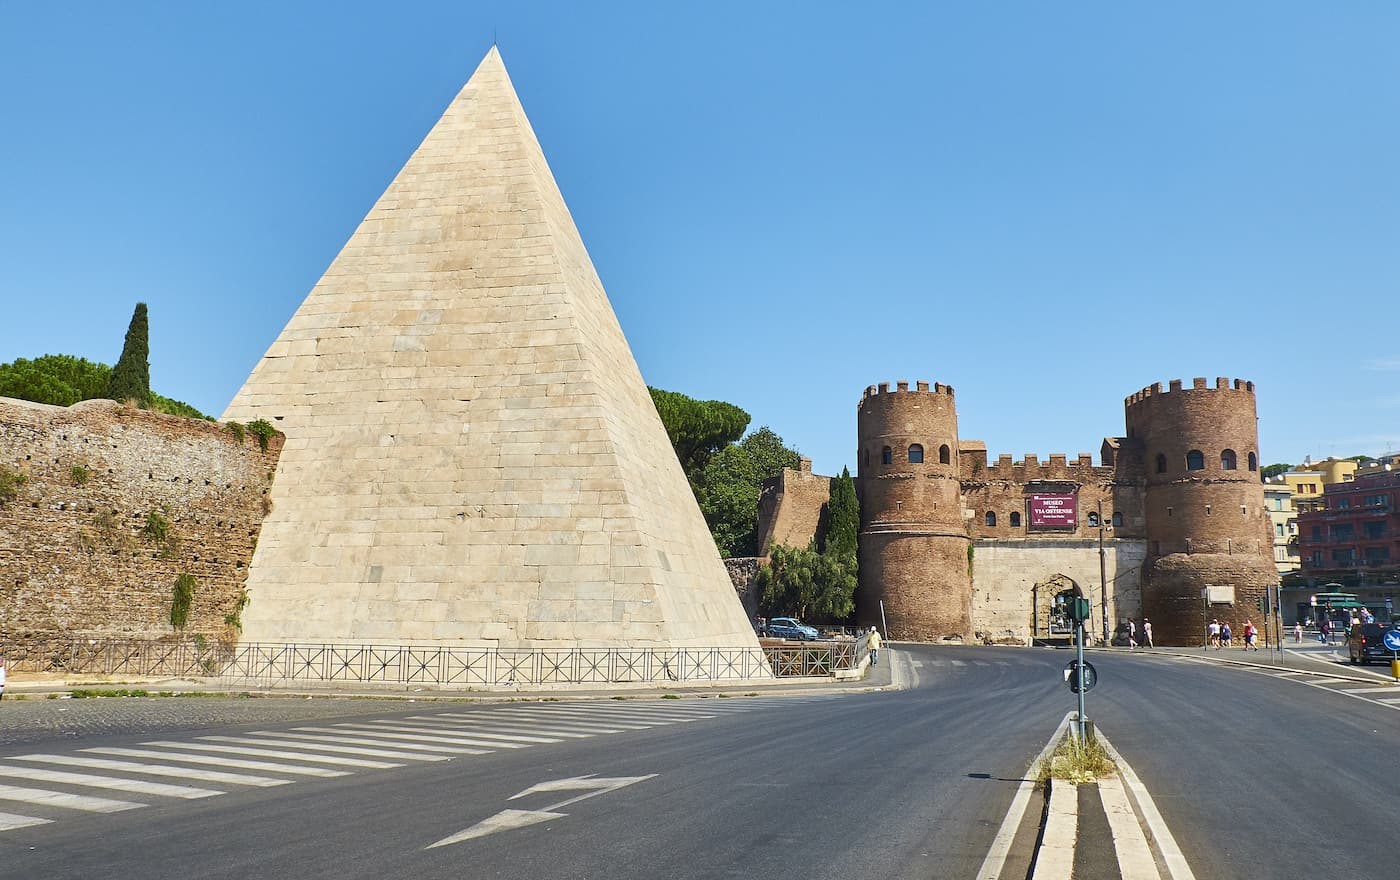 The Pyramid of Cestius and Porta San Paolo gate in background. View from Piazzale Ostiense square.